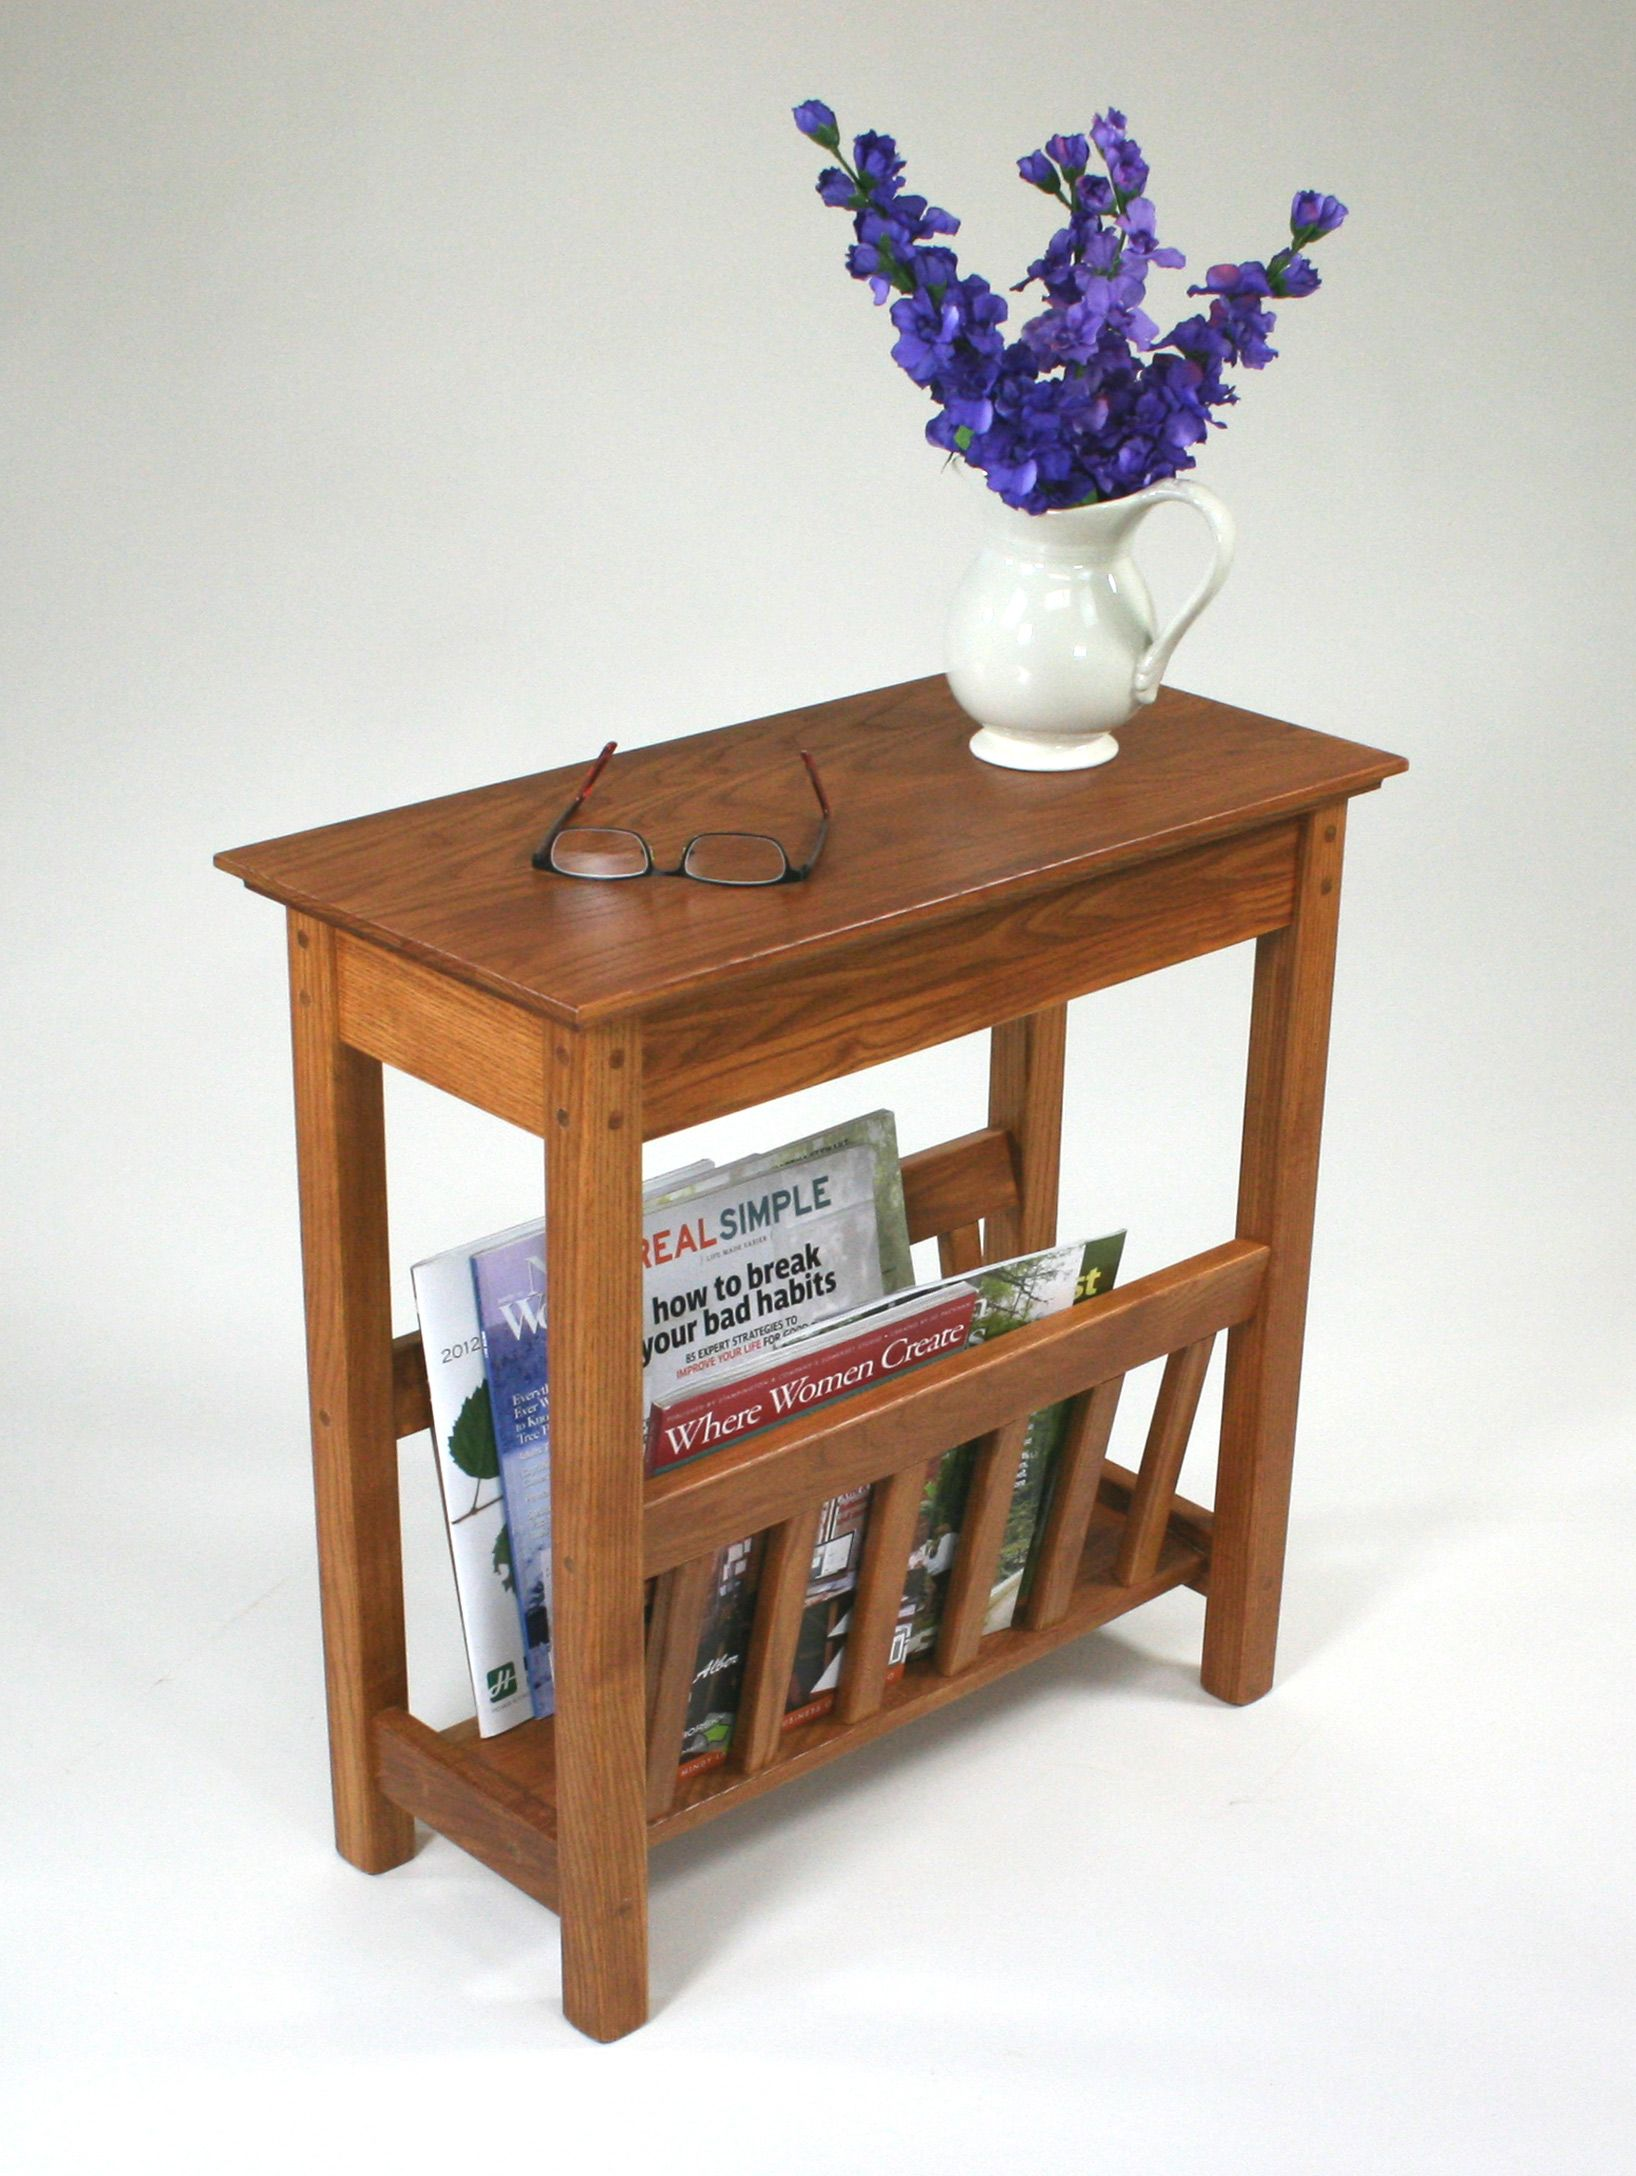 Delightful Small Side Table With Magazine Rack   The Simple But Very Stylish Wooden  Table Shelf Combo.